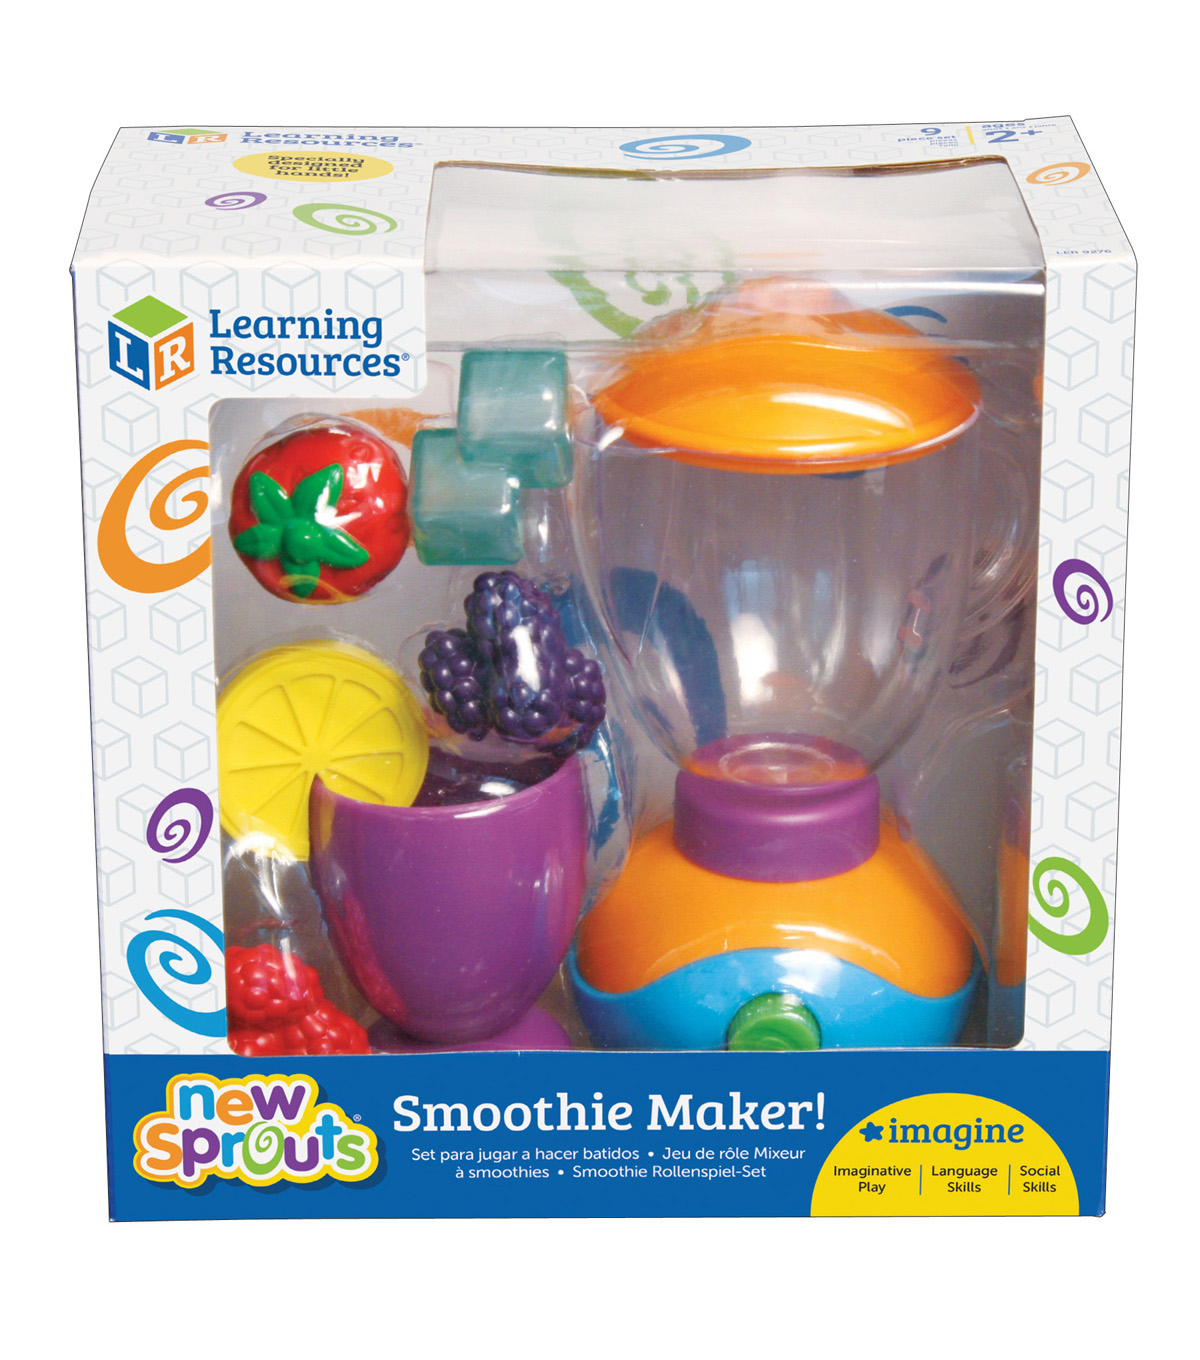 New Sprouts Smoothie Maker!